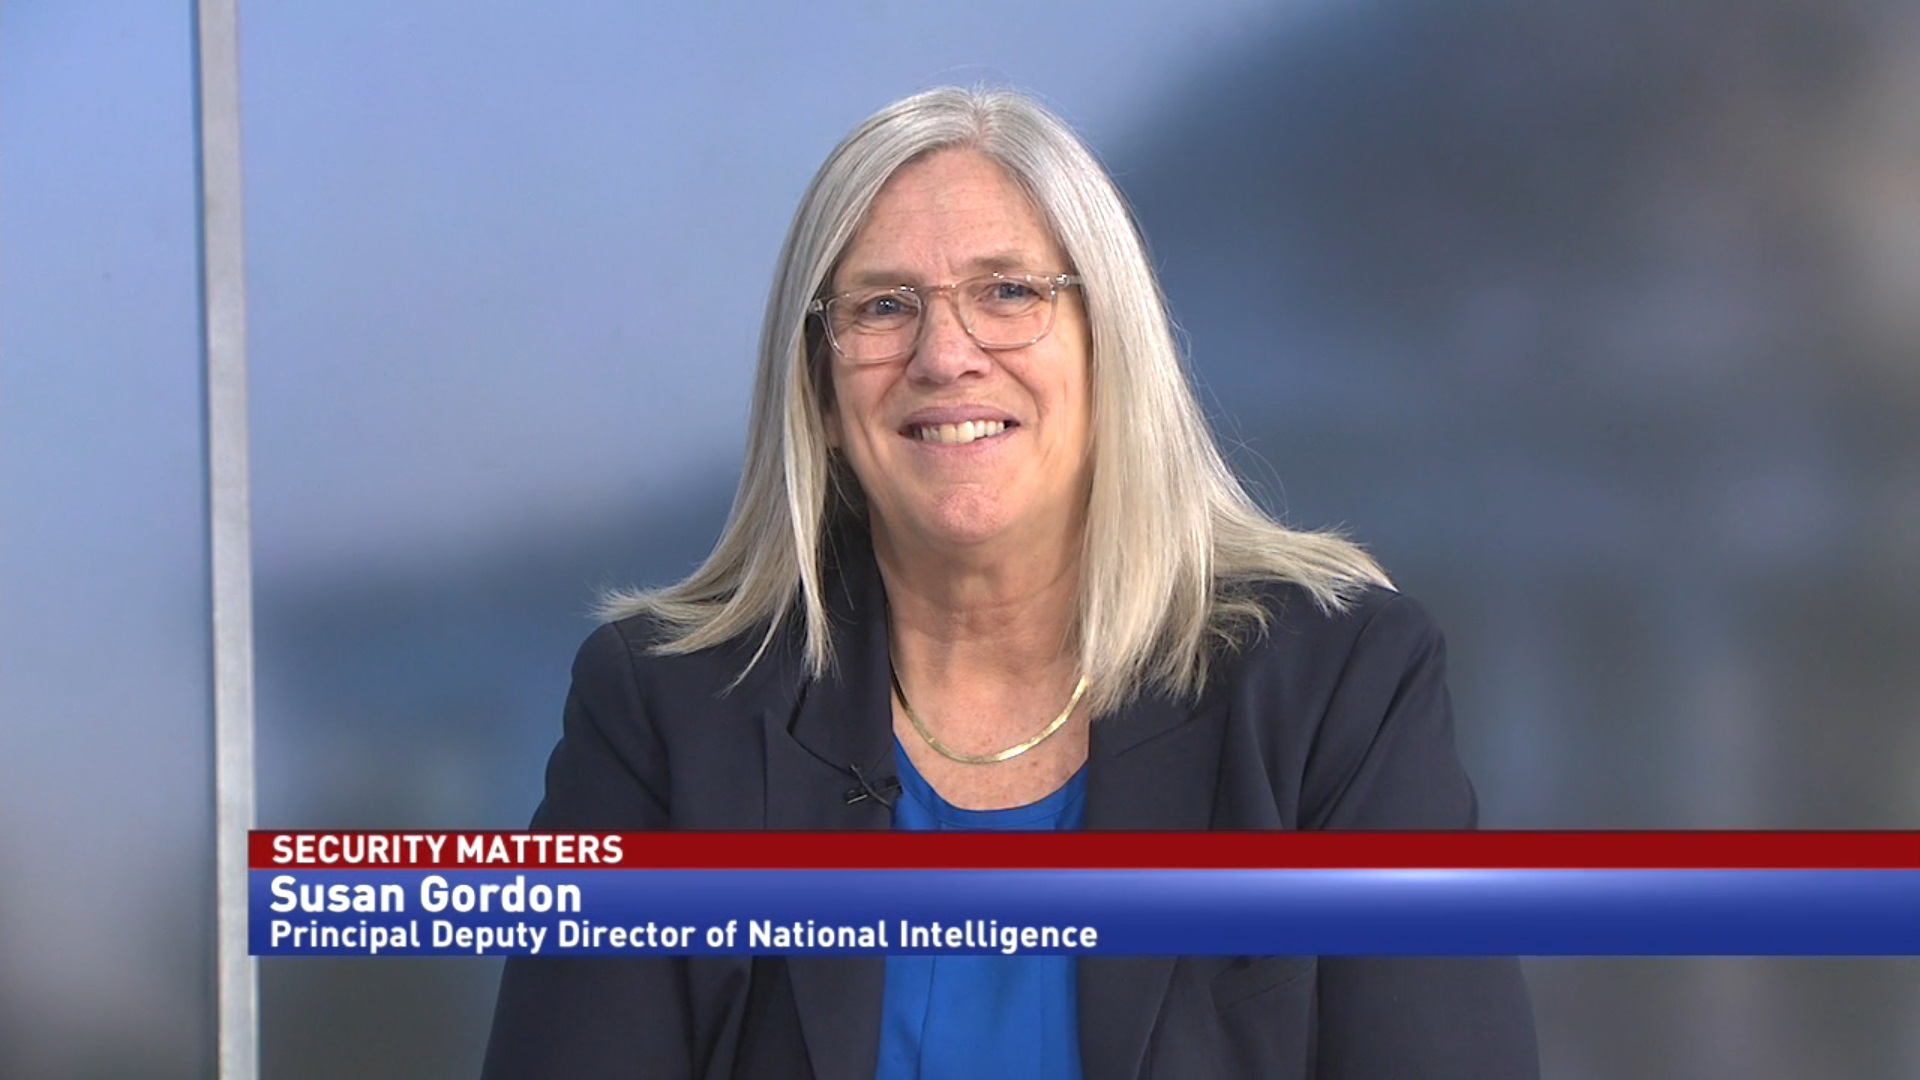 Principal Deputy Director of National Intelligence lays out top priorities